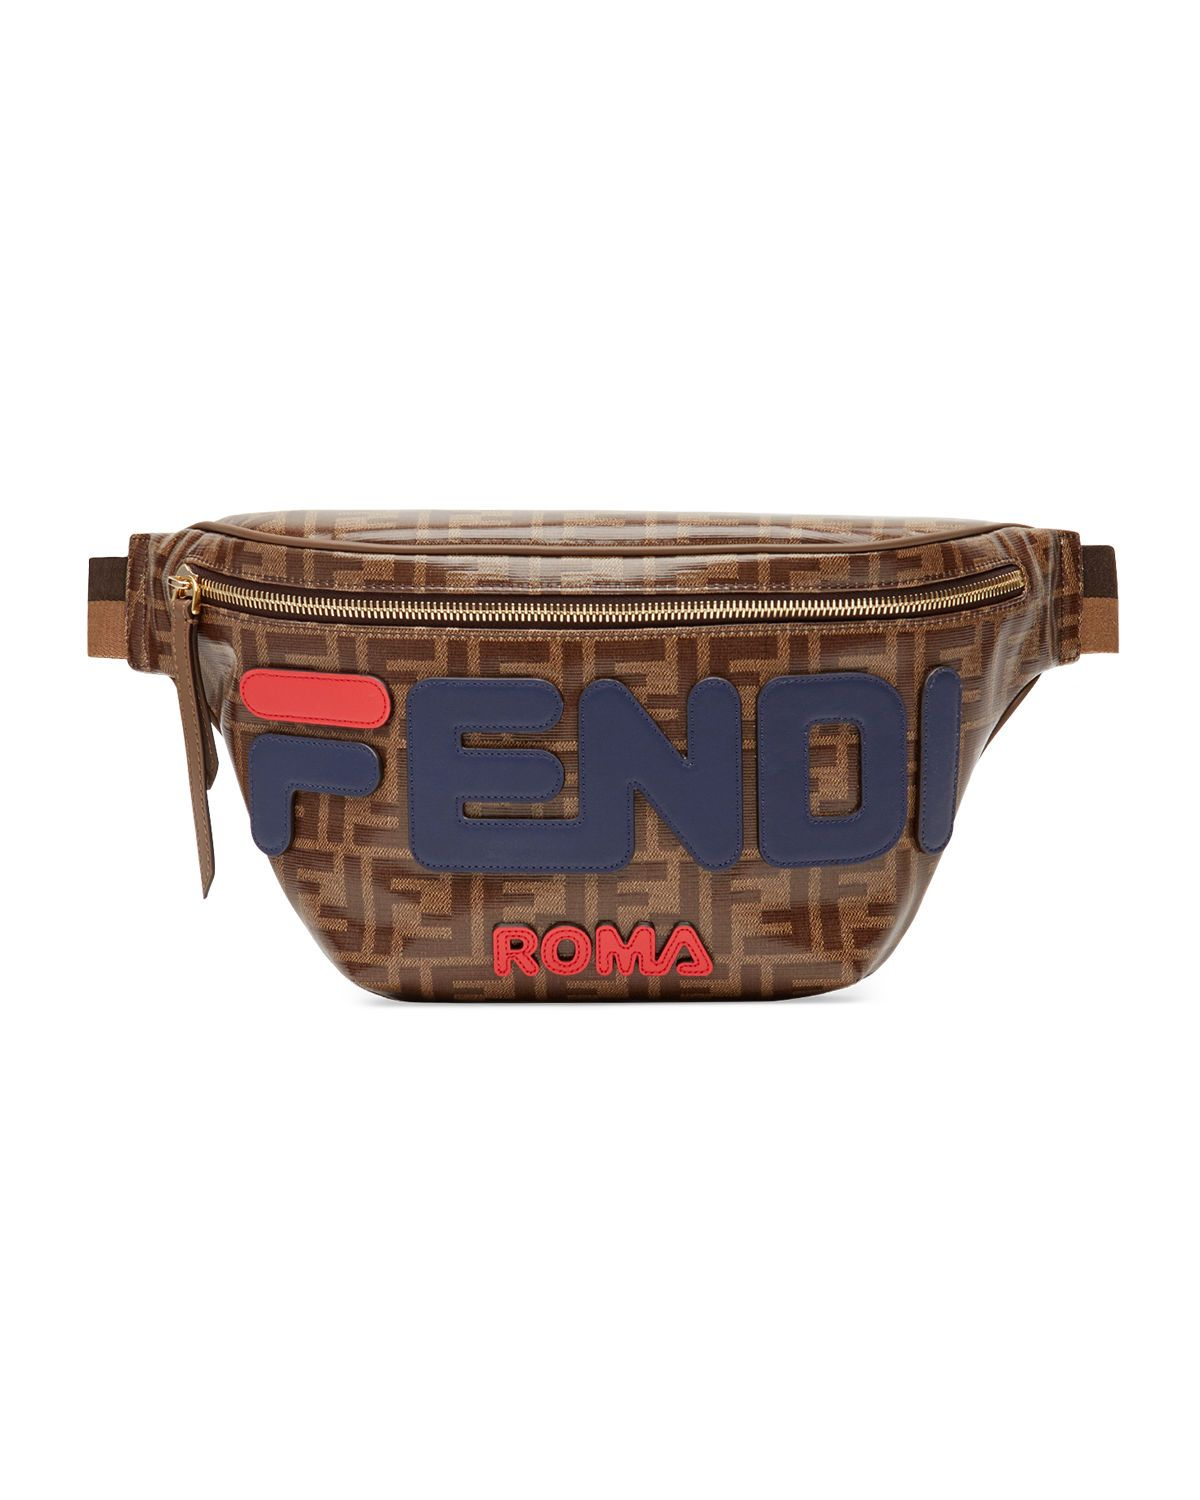 47c66a52408c FENDI MEN'S FENDI MANIA COATED CANVAS BELT BAG/FANNY PACK. #fendi #bags